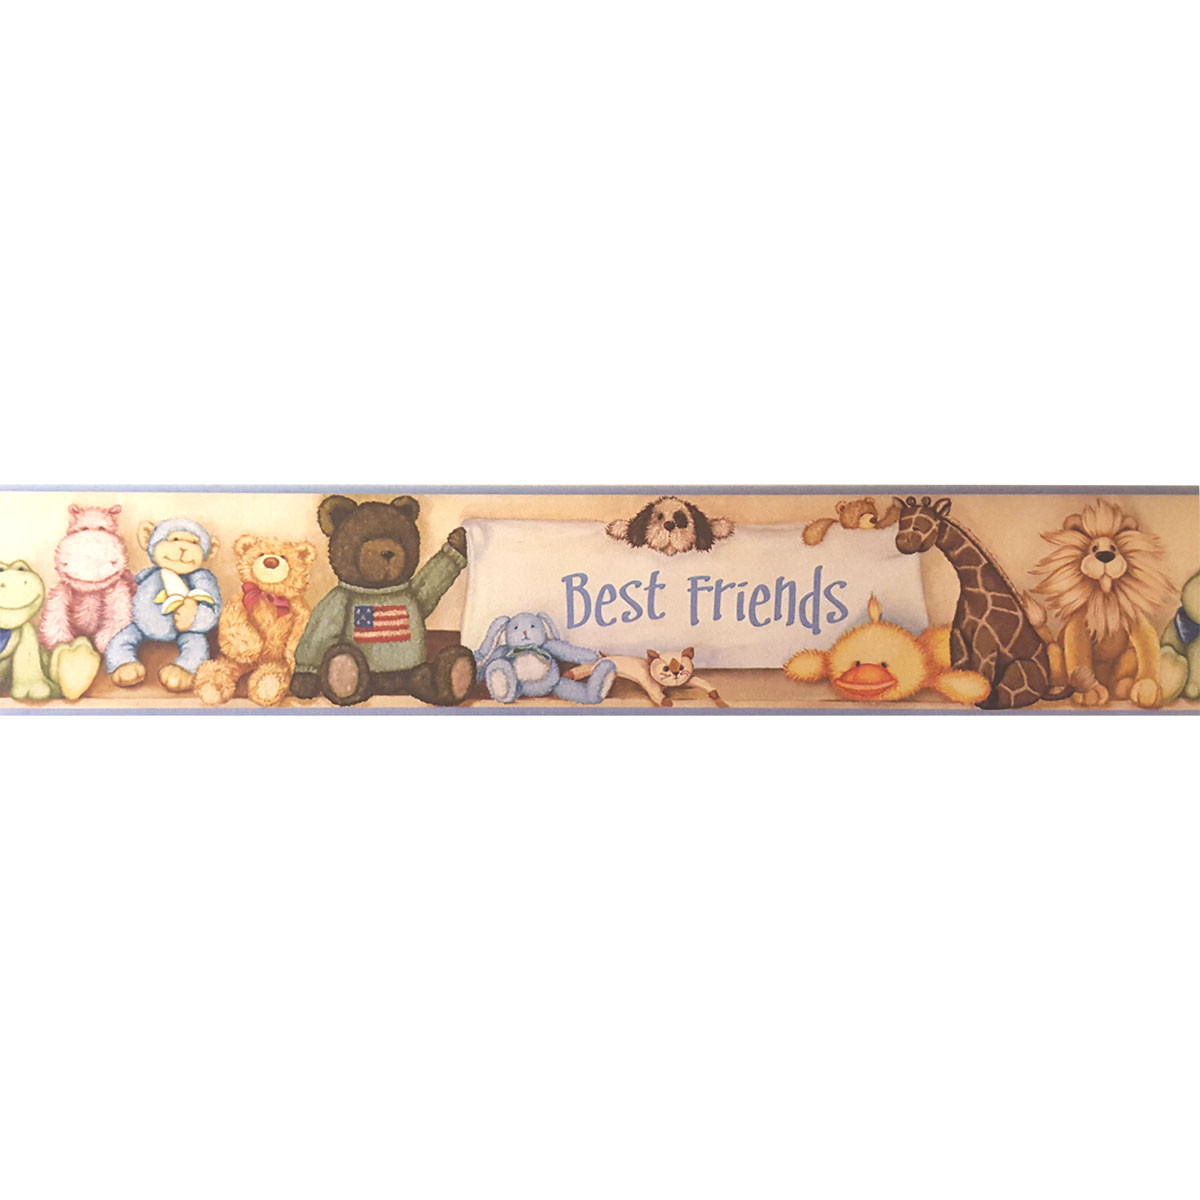 One Cuddle Buddies prepasted wall border measuring 9 inches (22.86 cm) x 5 yards (4.57 meters). #best